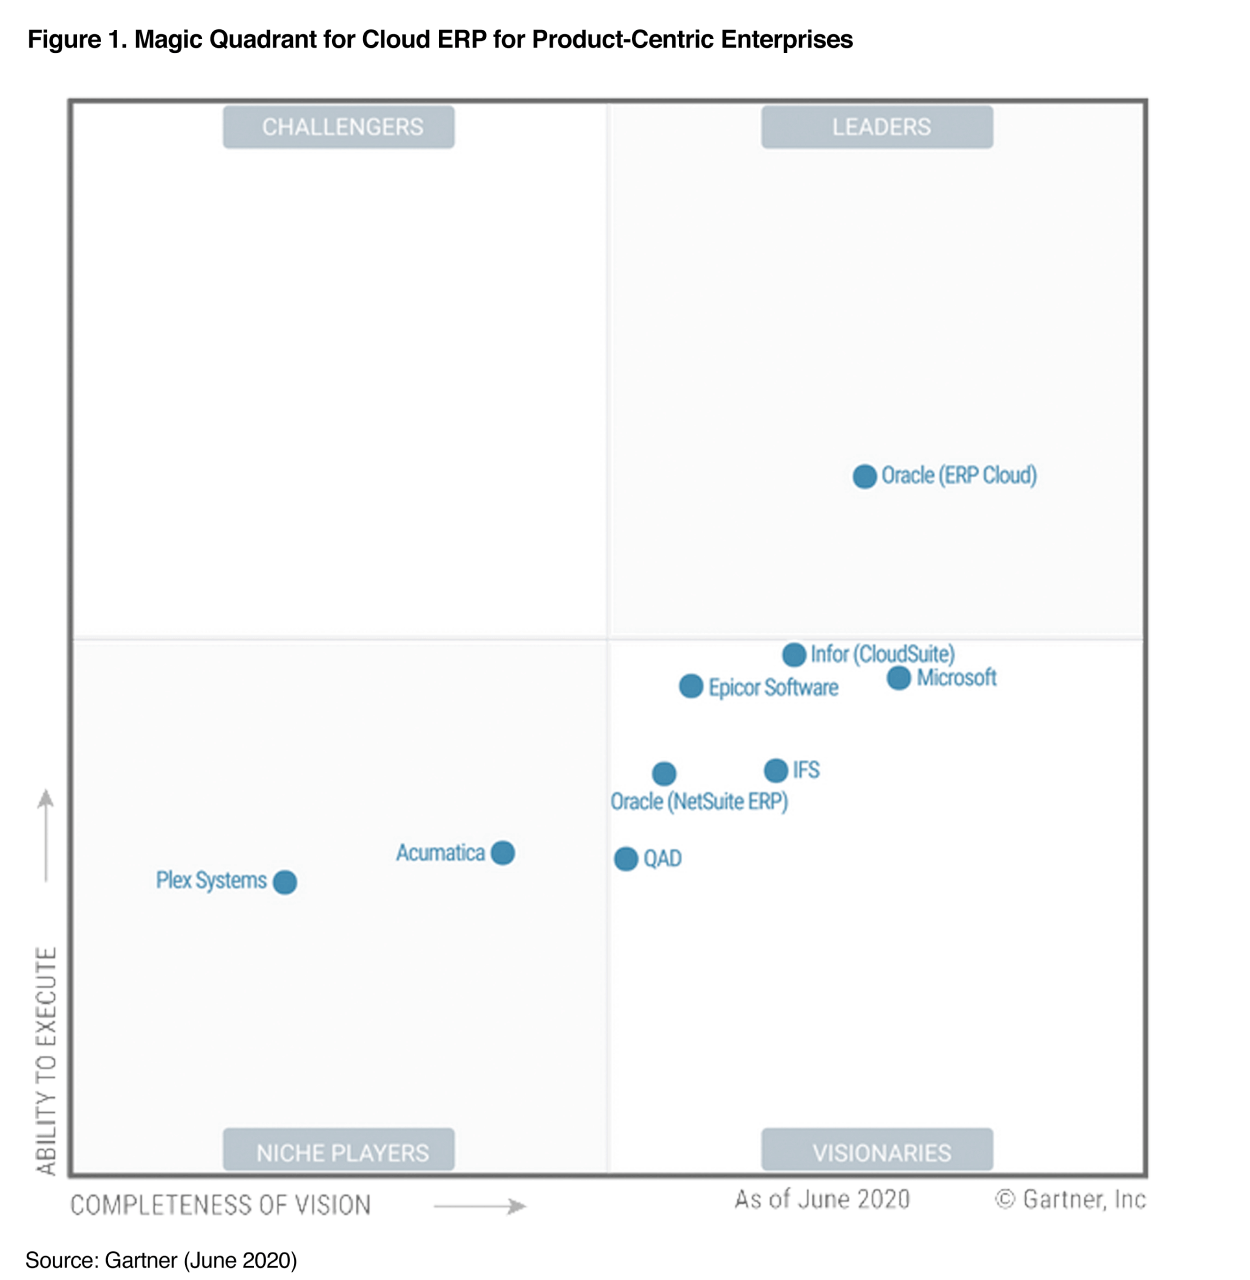 Relatório Gartner Magic Quadrant da Hestermann